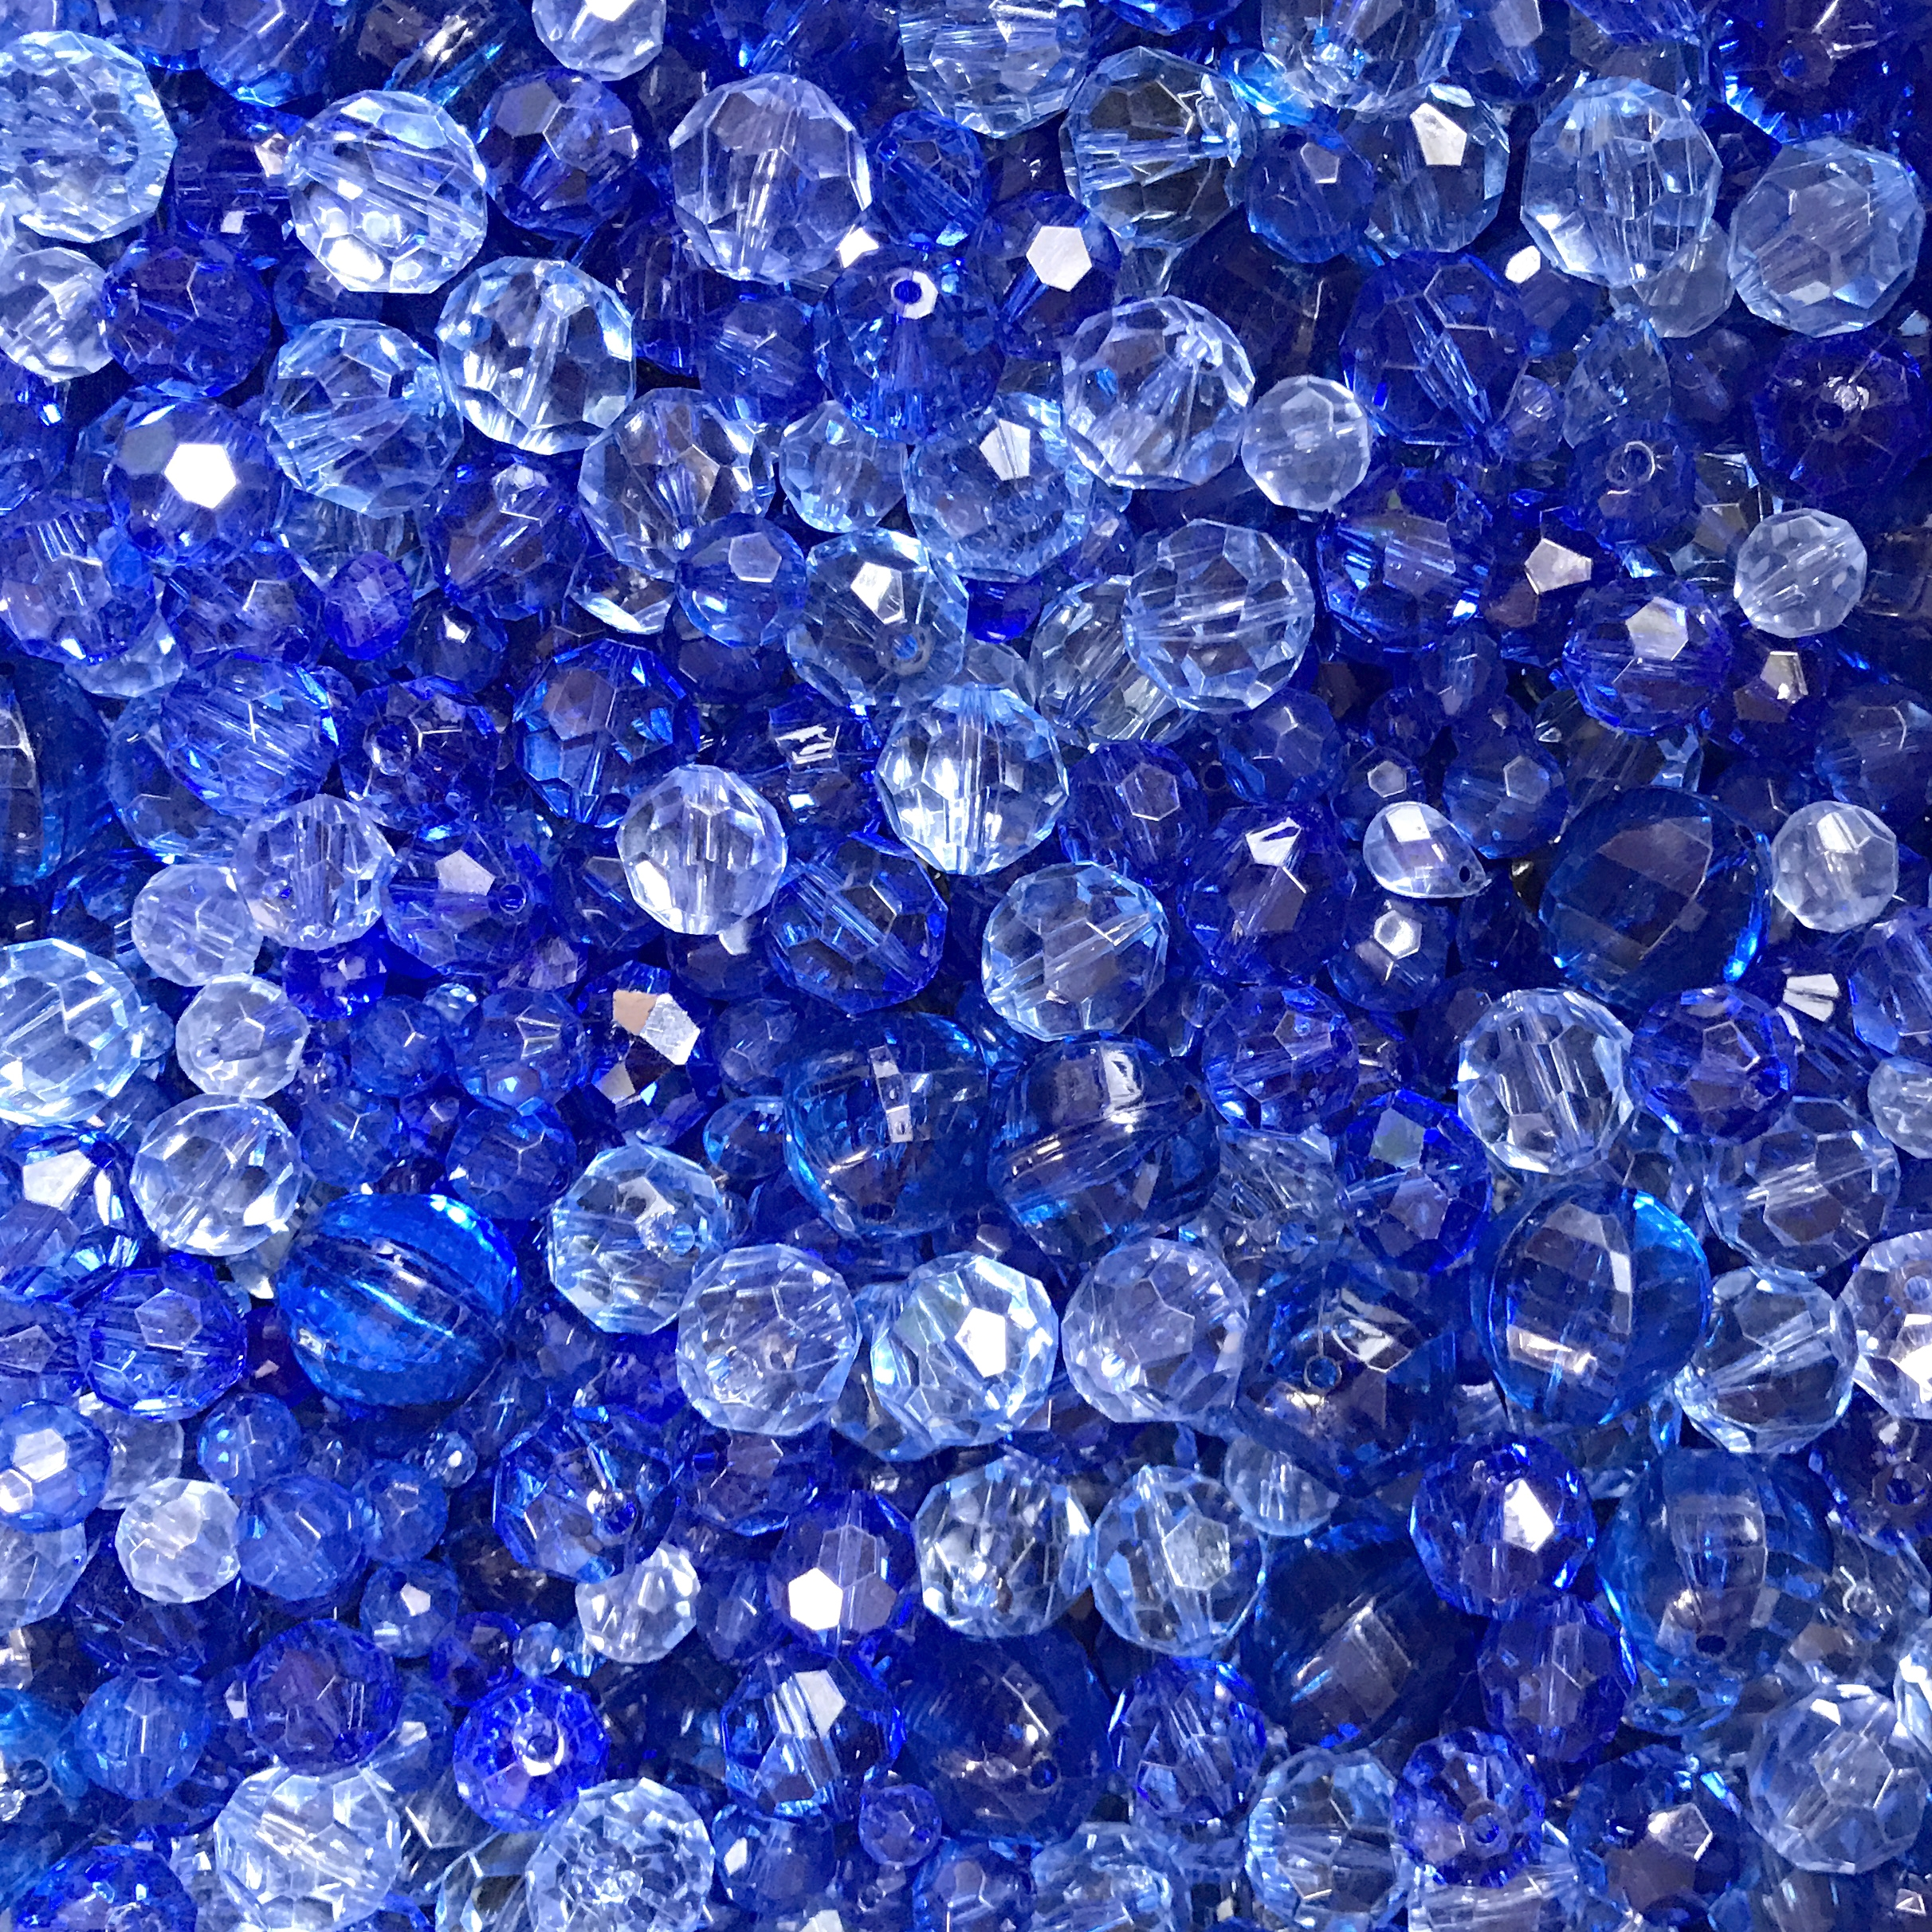 Bead Mix, Tangled Up In Blue, 0908, mixed blue beads, assorted beads, beading supplies, jewelry making supplies, vintage jewelry supplies, faceted beads, mixed beads